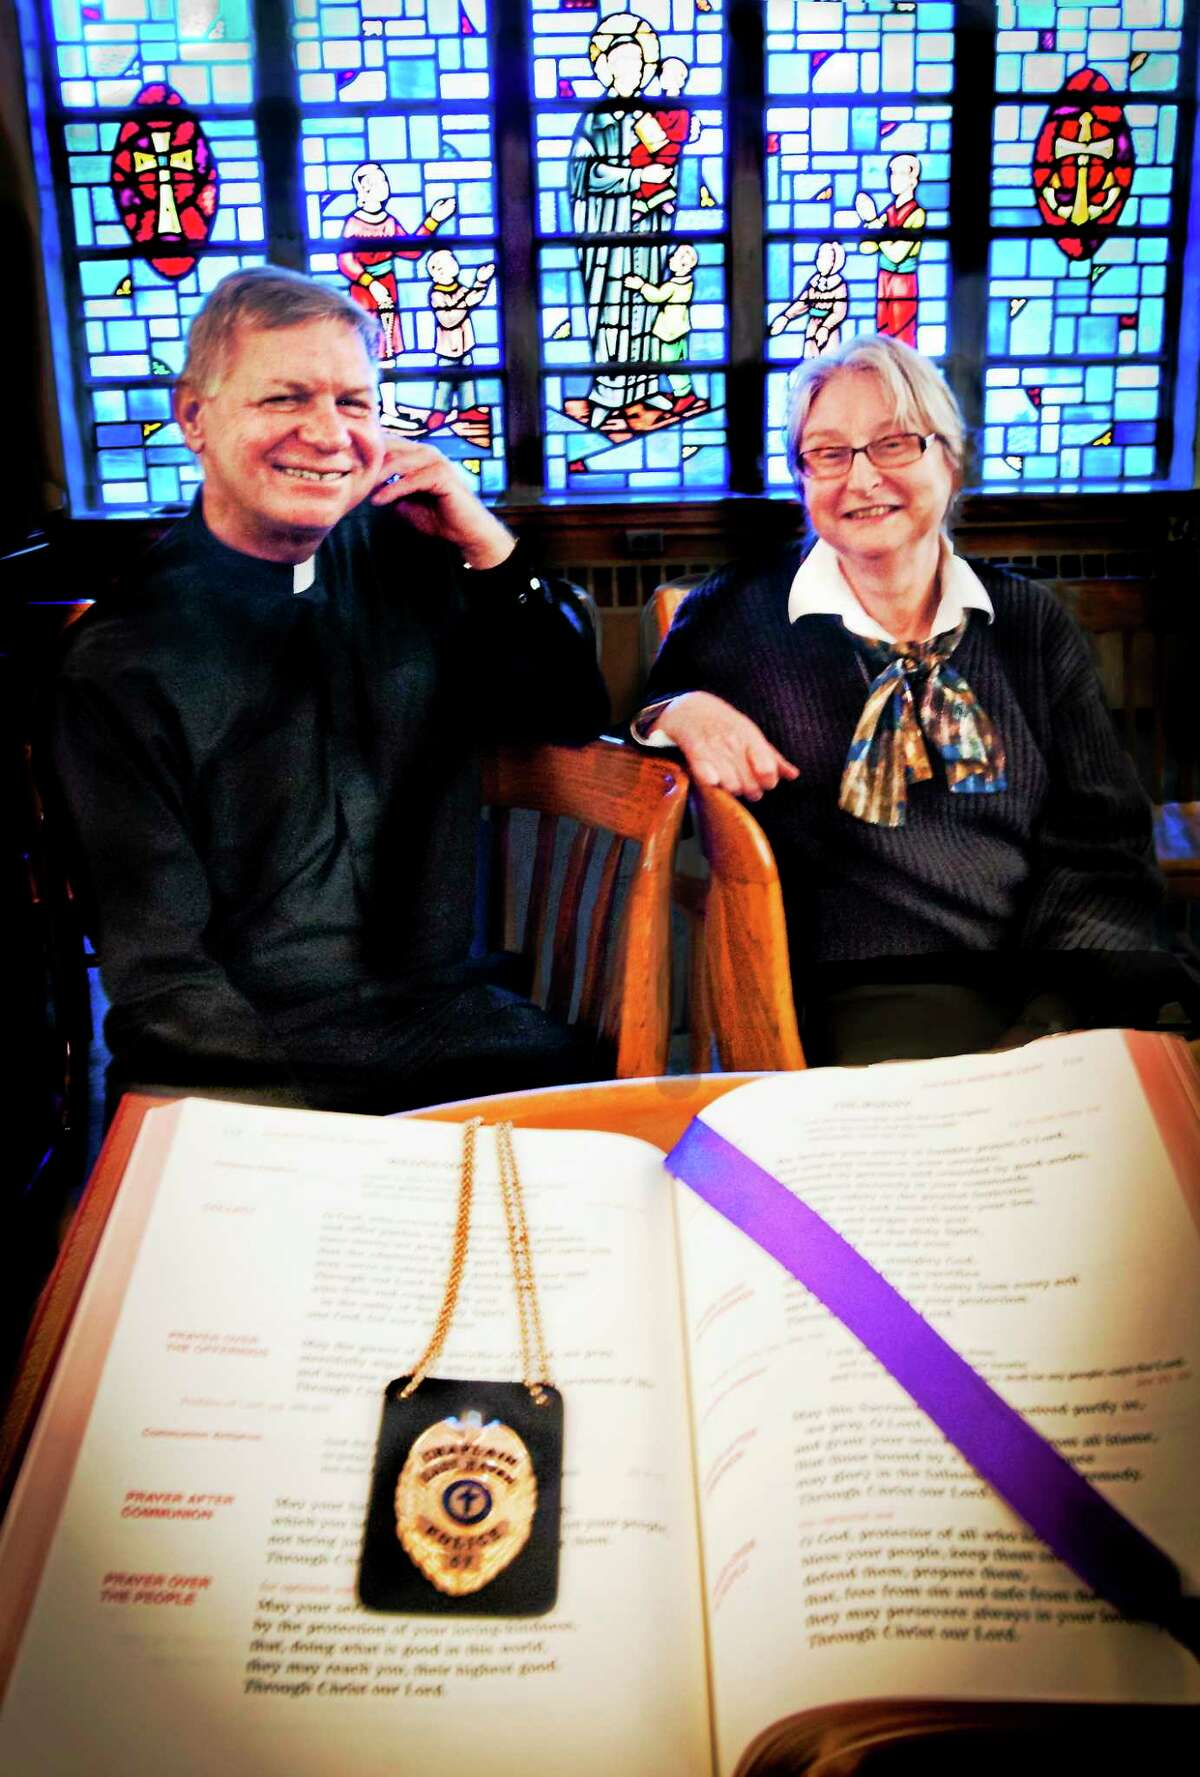 (Melanie Stengel - New Haven Register) Father Tom Sievel, of St. Vincent de Paul in East Haven, and Karen Gronback Johnson, ordained pastor in the United Church of Christ, and serving the Old Stone Church in East Haven, in the chapel of St. Vincent de Paul 4/3. They are Chaplains with the East Haven Police Department.